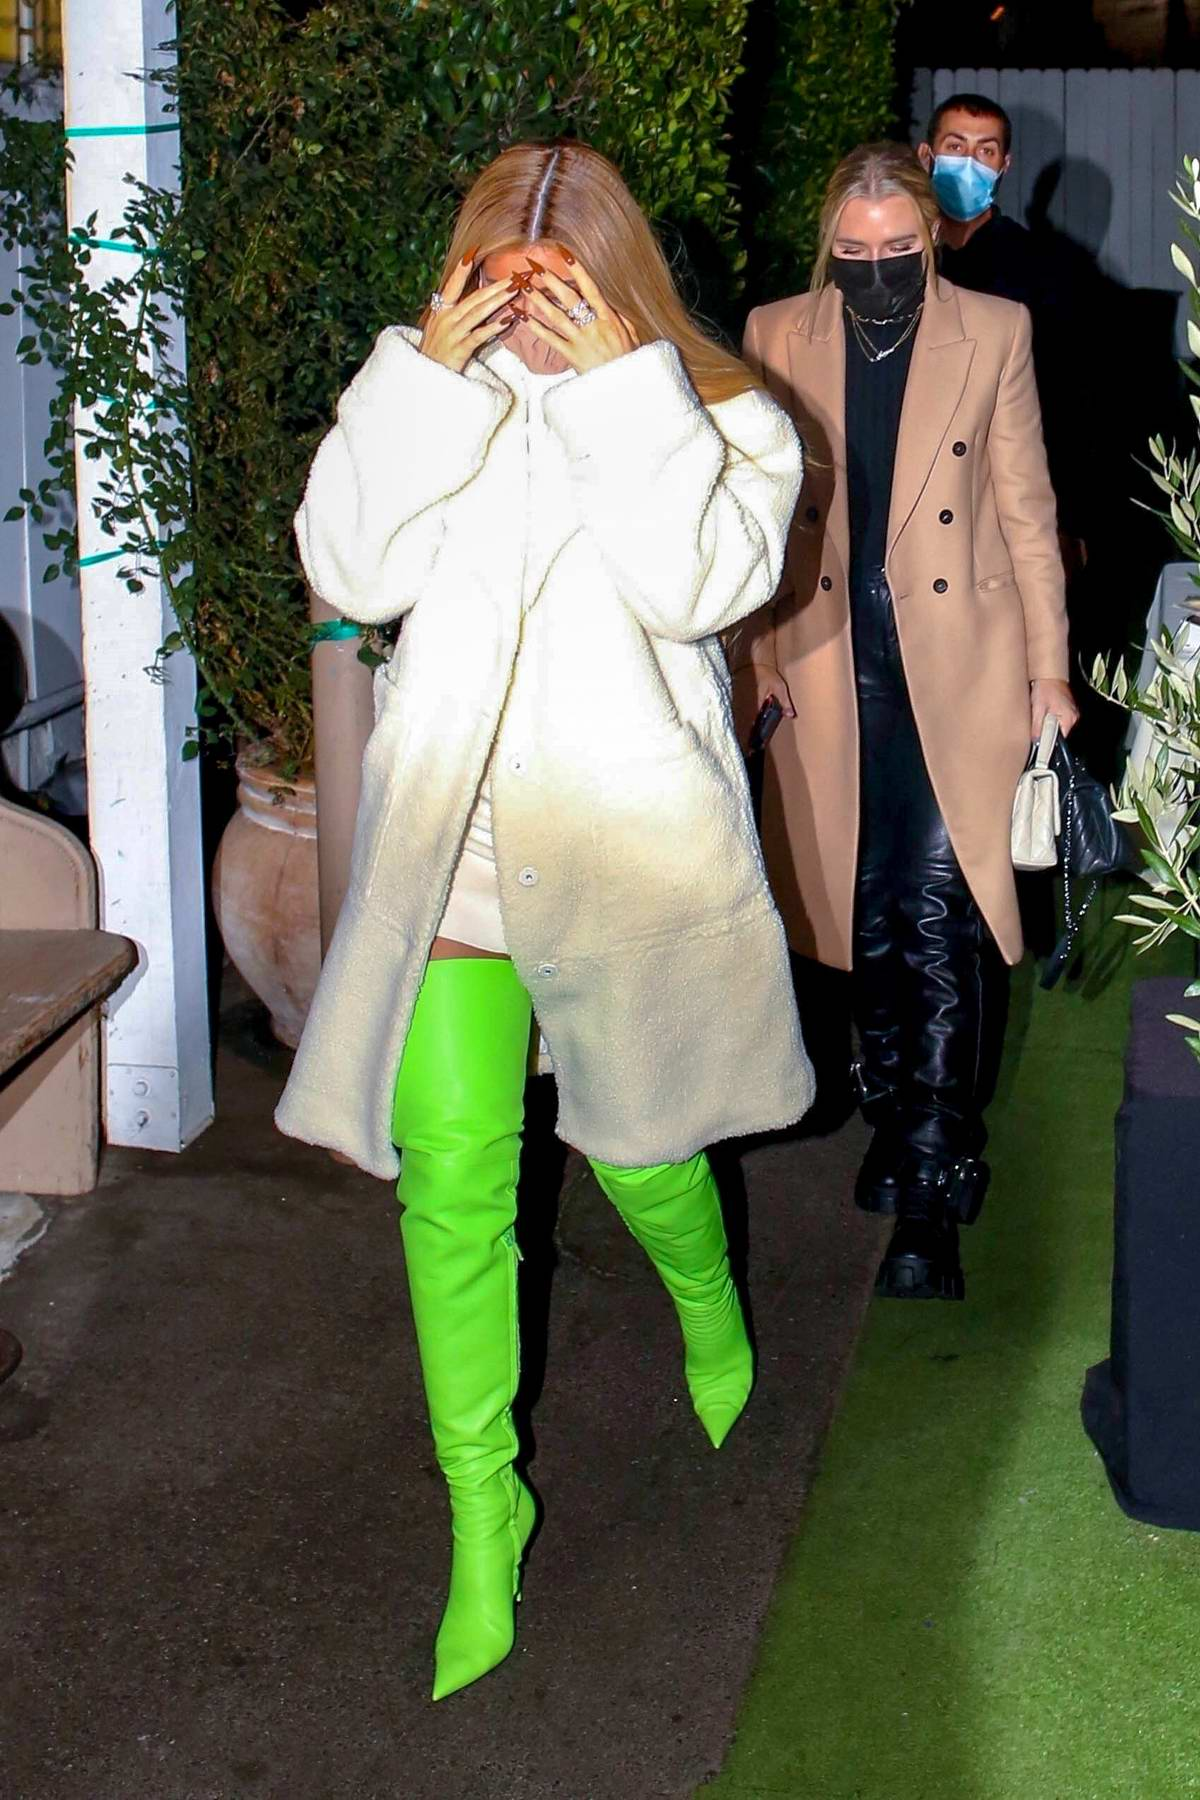 Kylie Jenner dazzles in bright green thigh-high boots as she arrives for dinner with friends in Santa Monica, California